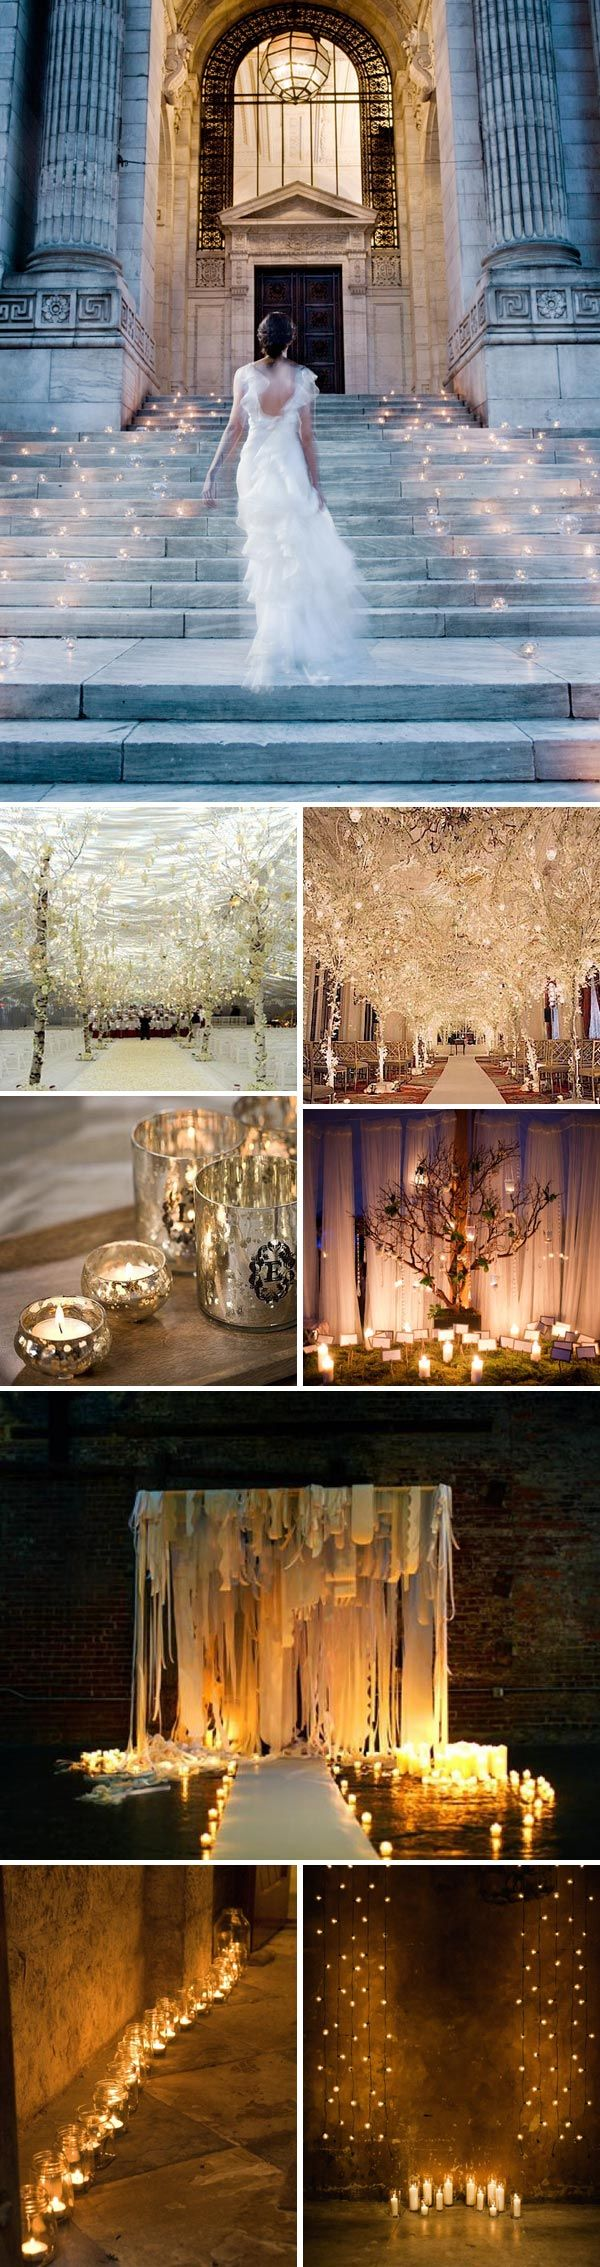 It's like a fairy tale come to life - gorgeous use of lights to build ambiance